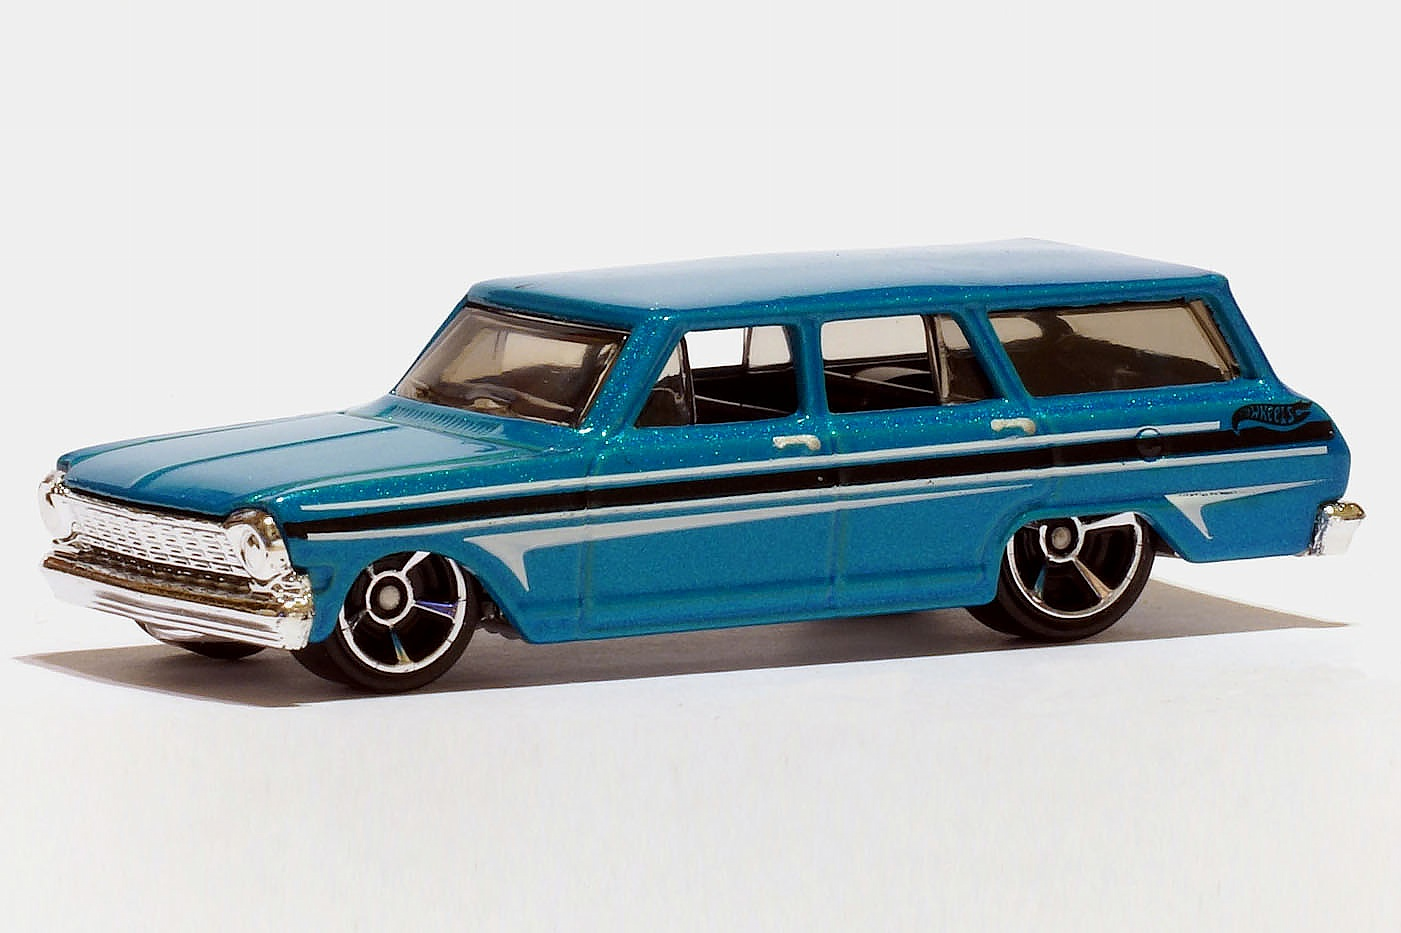 '64 Chevy Nova Station Wagon